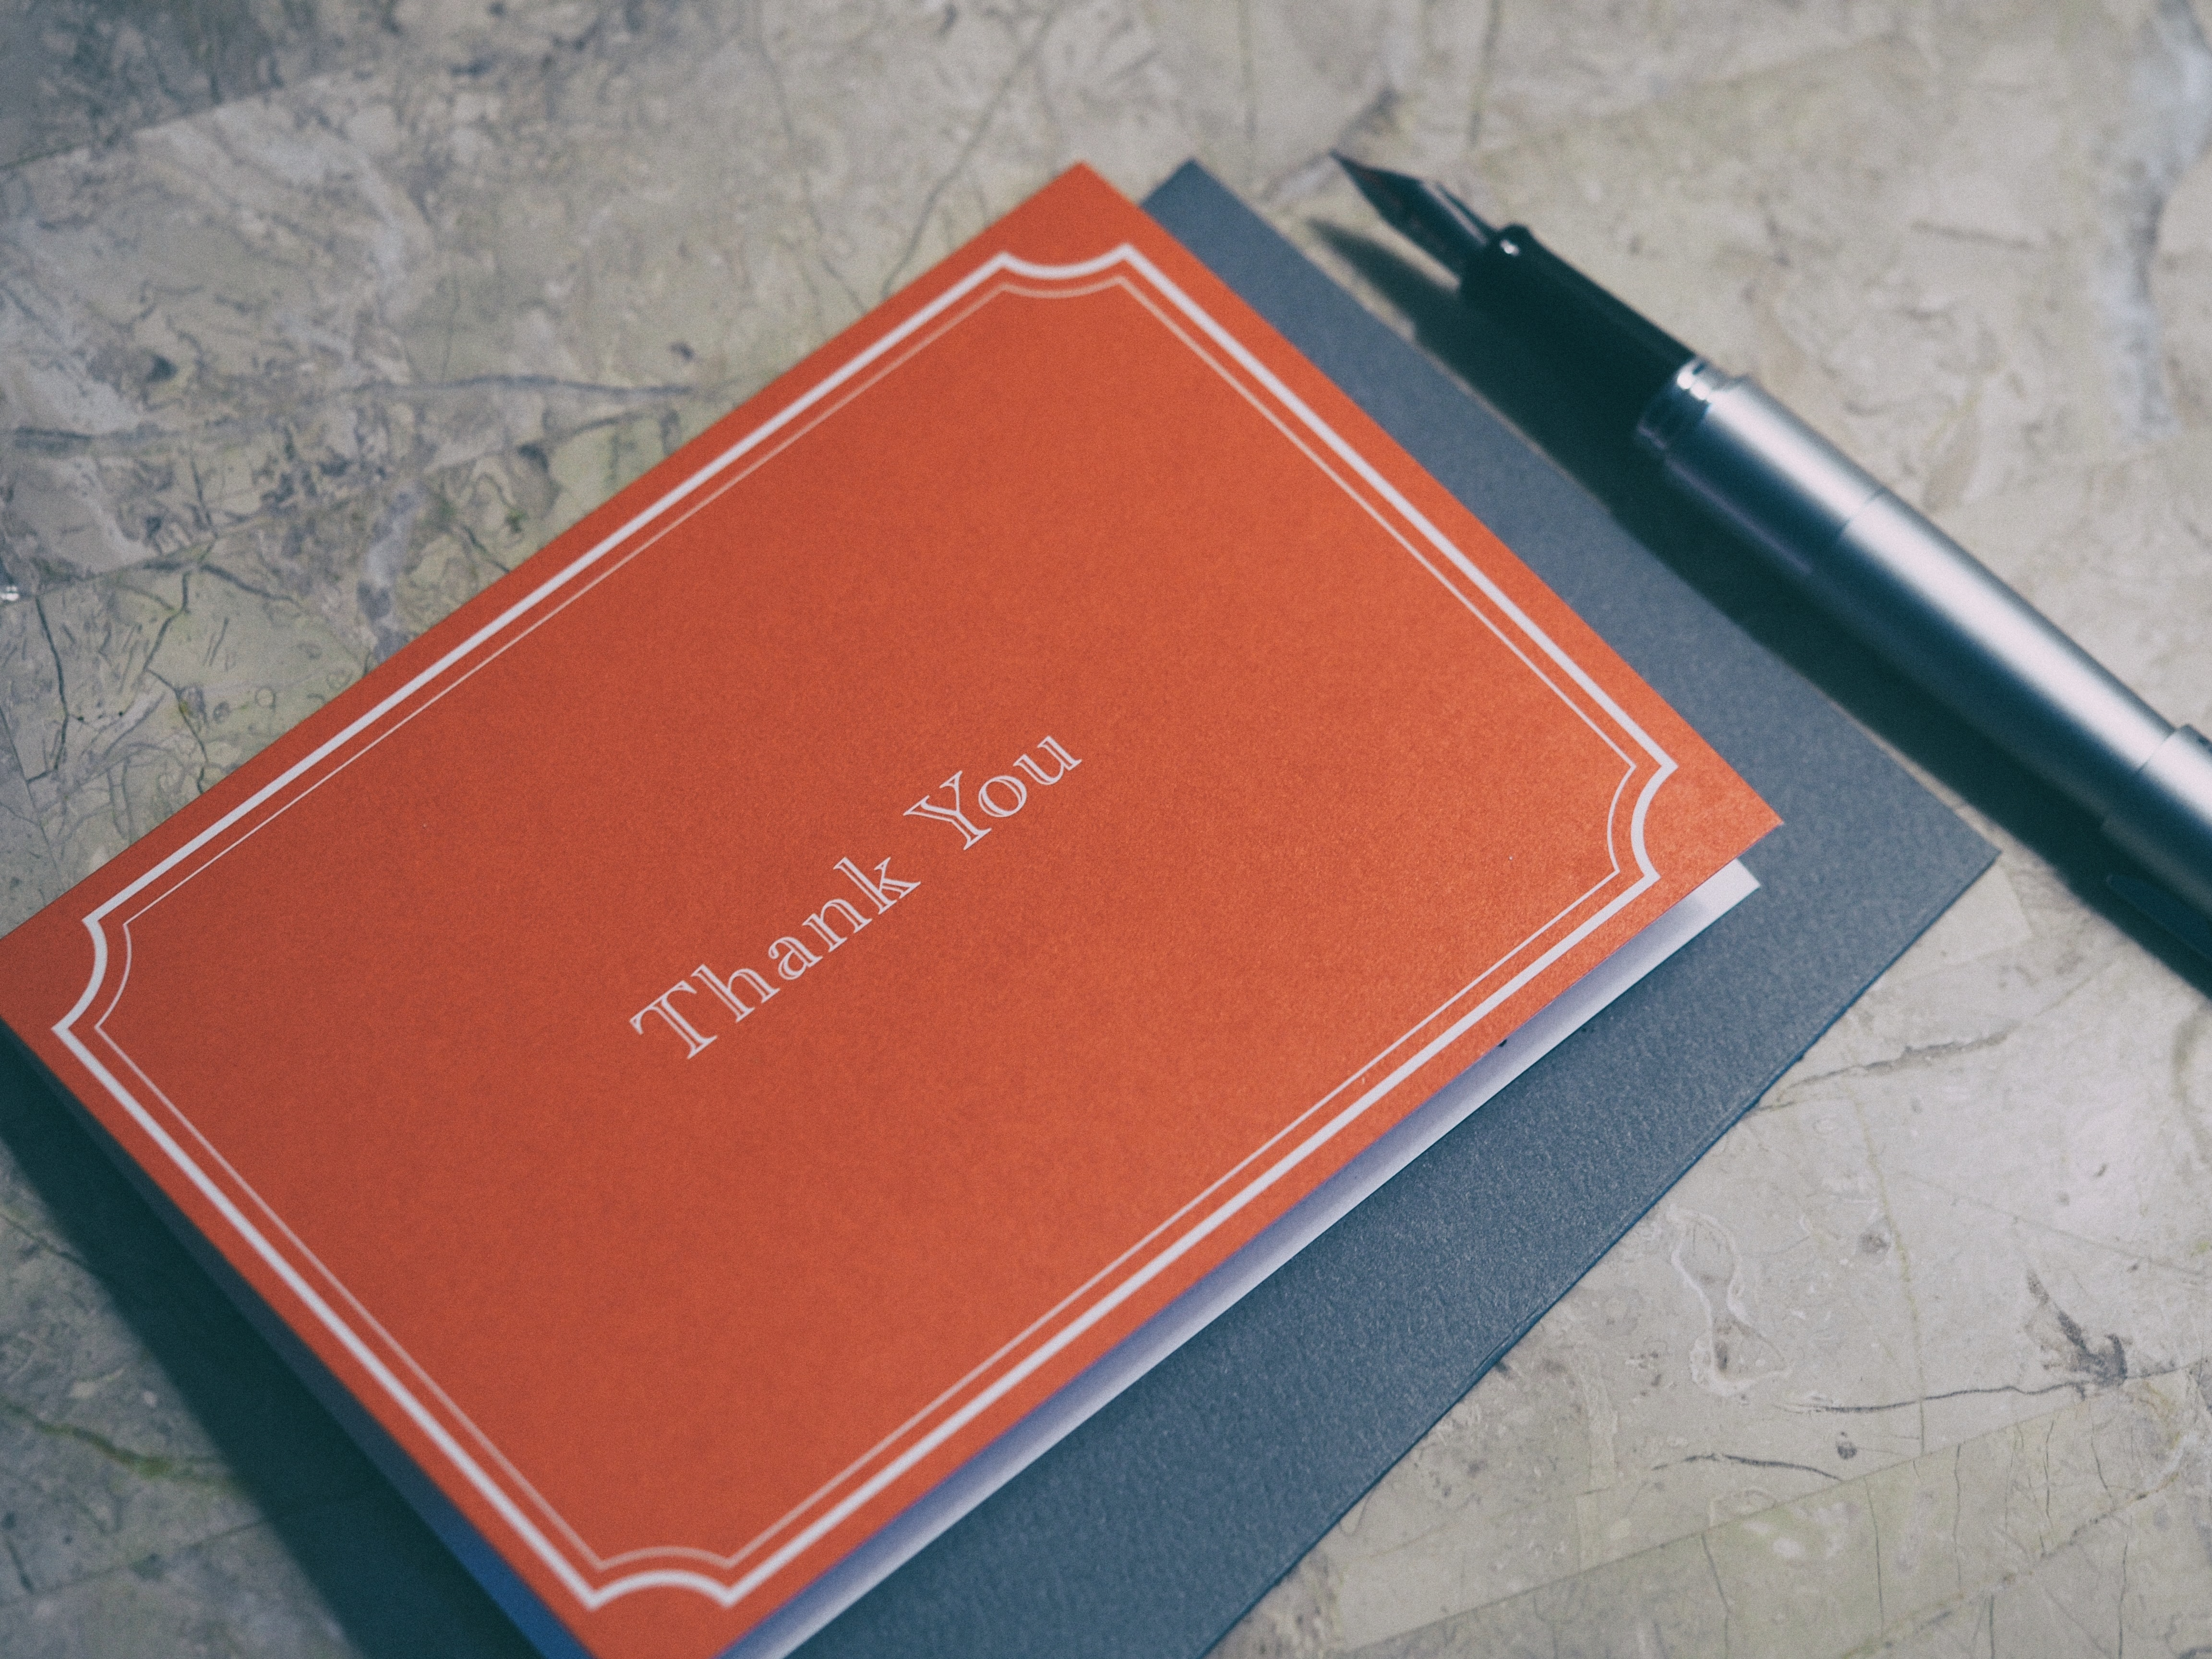 A thank-you note